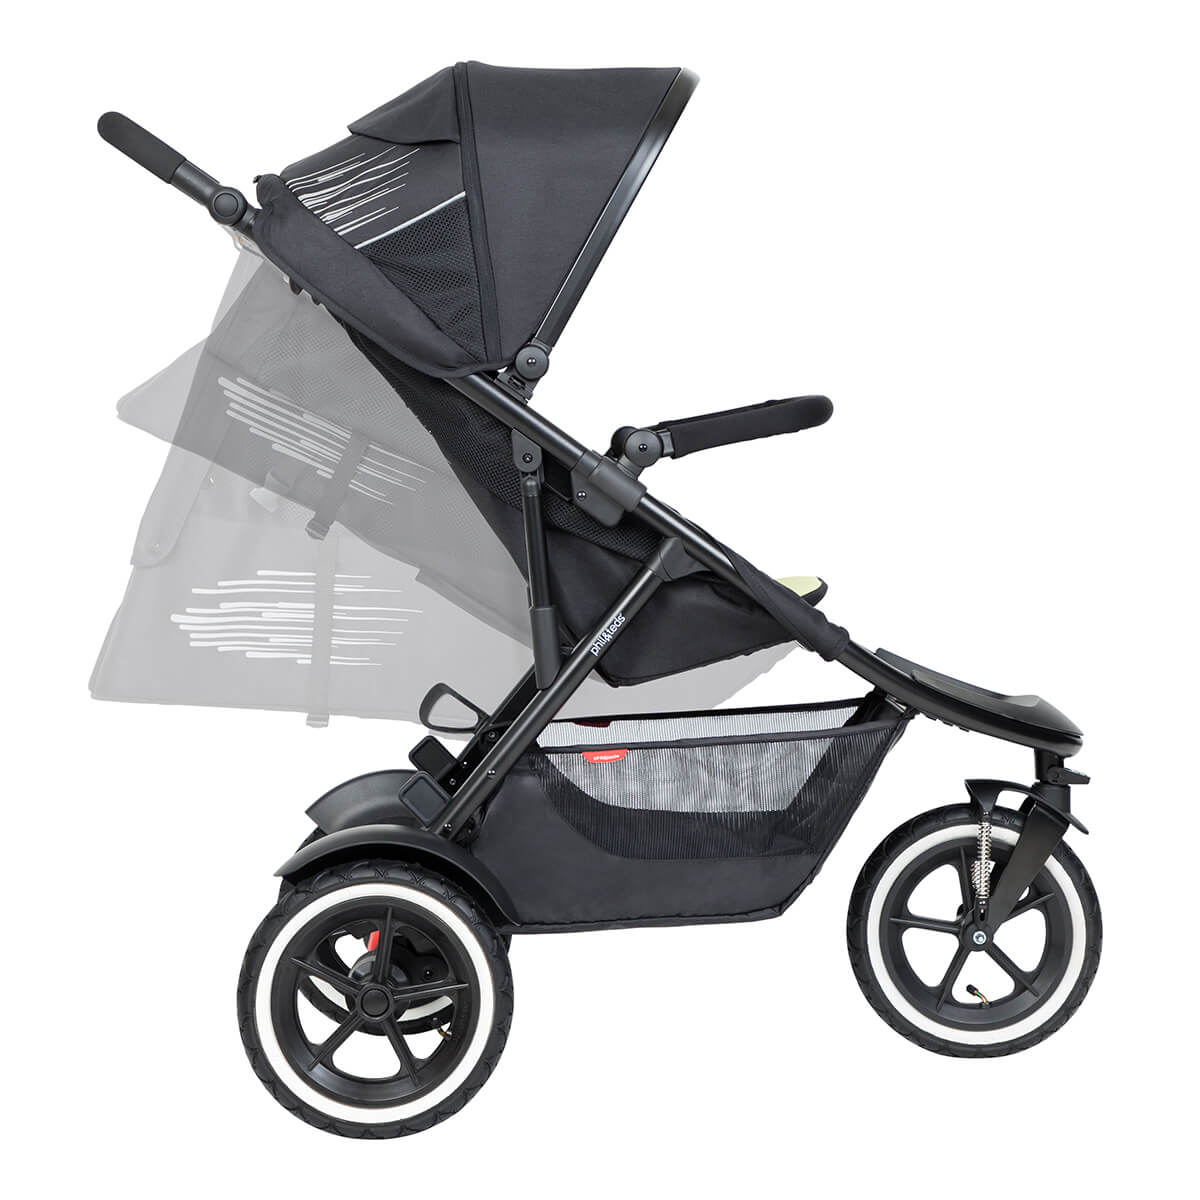 https://cdn.accentuate.io/4509527408728/19272668184664/philteds-sport-poussette-can-recline-in-multiple-angles-including-full-recline-for-newborn-baby-v1626484342690.jpg?1200x1200